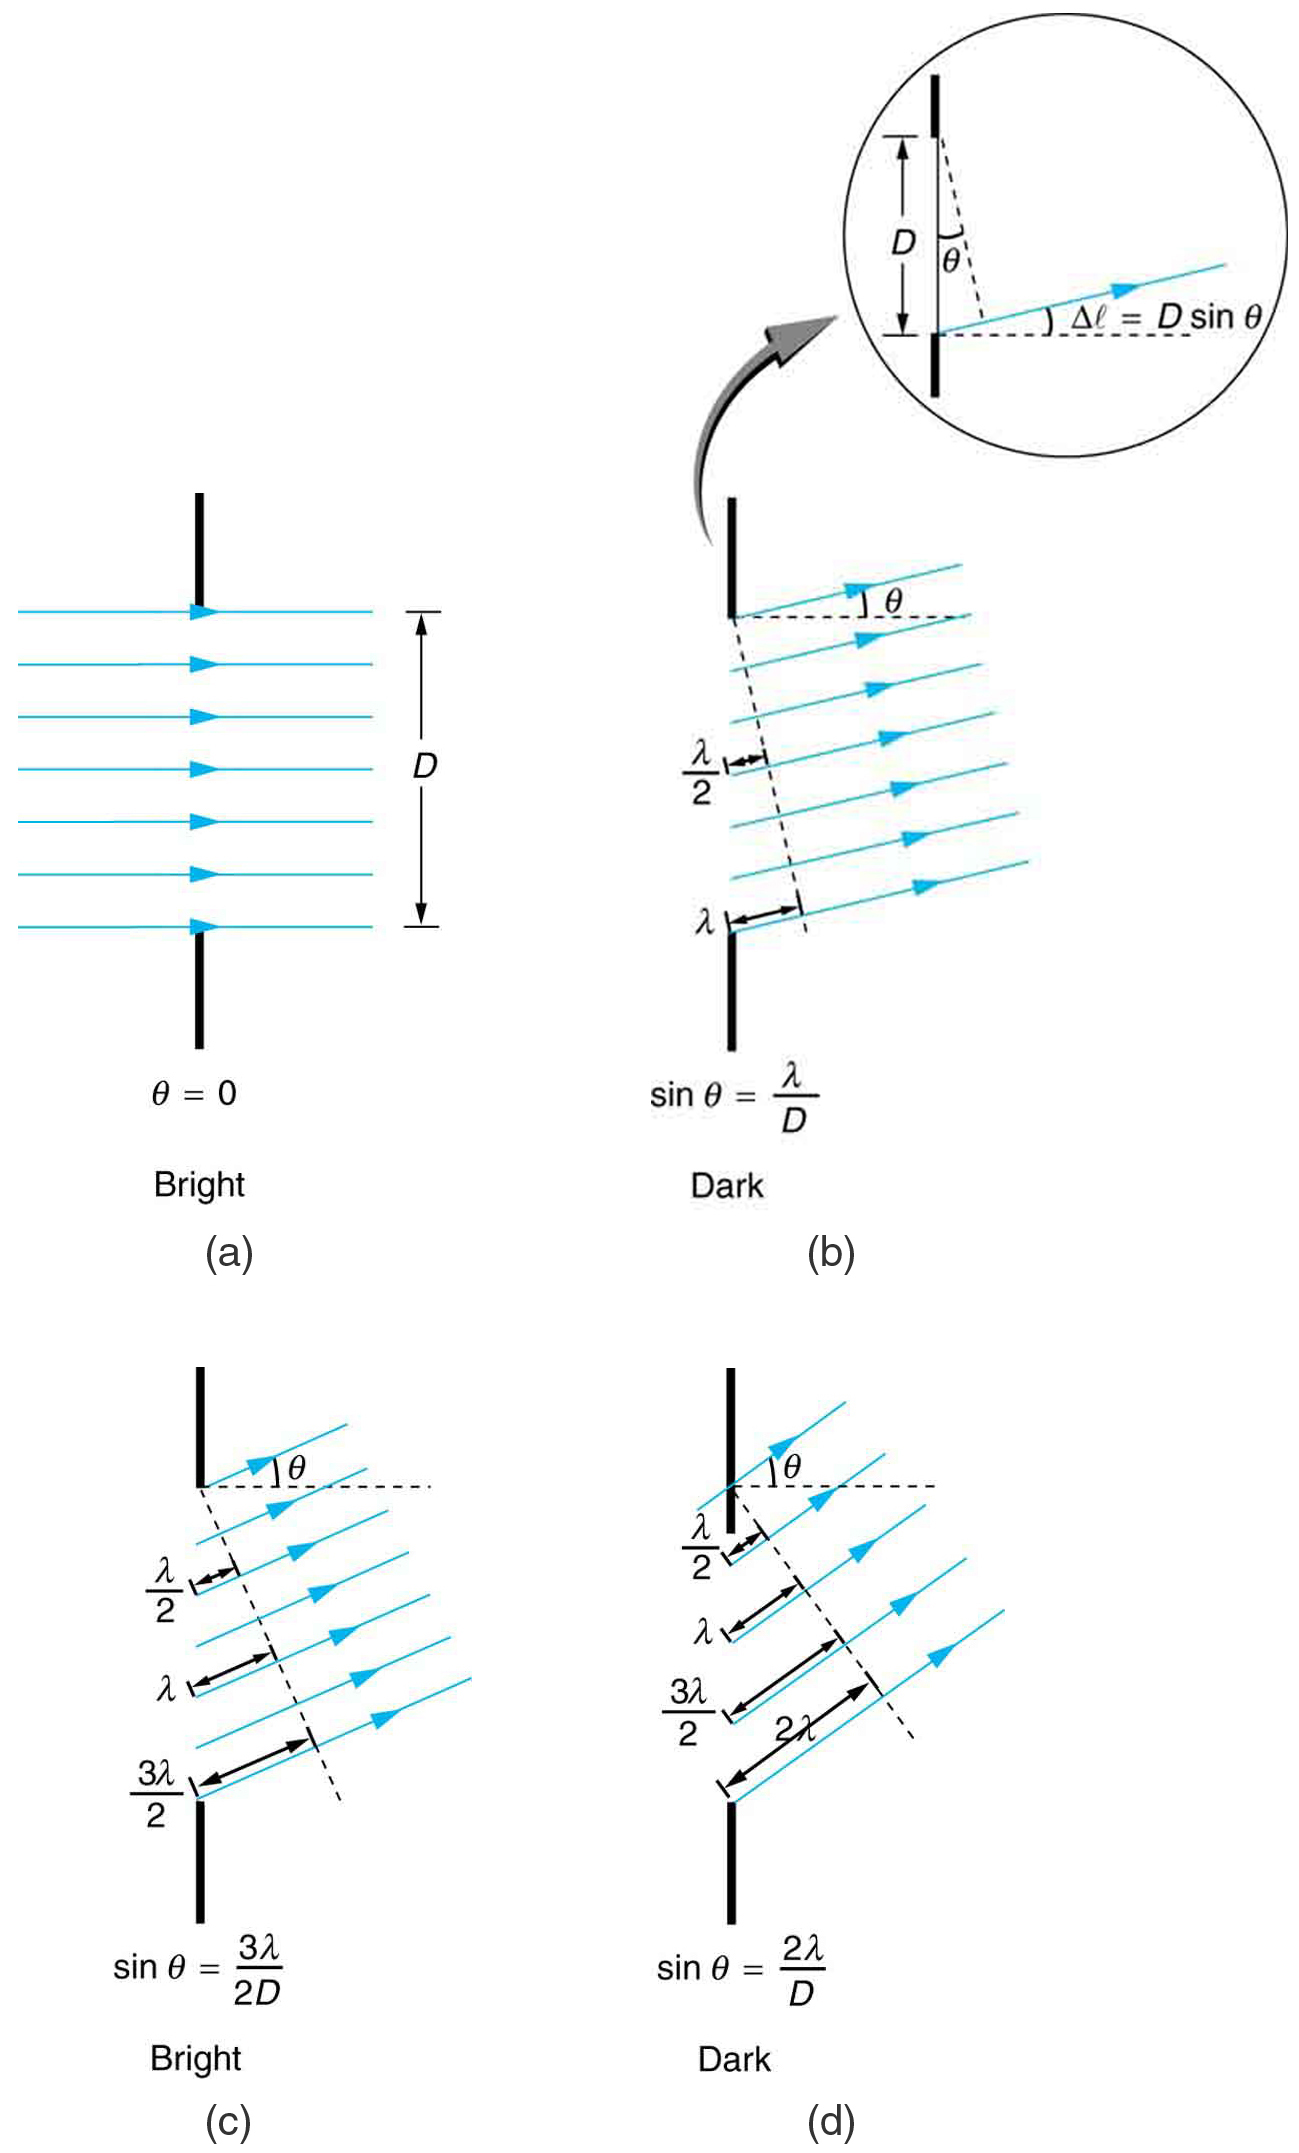 Single Slit Diffraction College Physics Heat Engine Pv Diagram The Figure Shows Four Schematics Of A Ray Bundle Passing Through